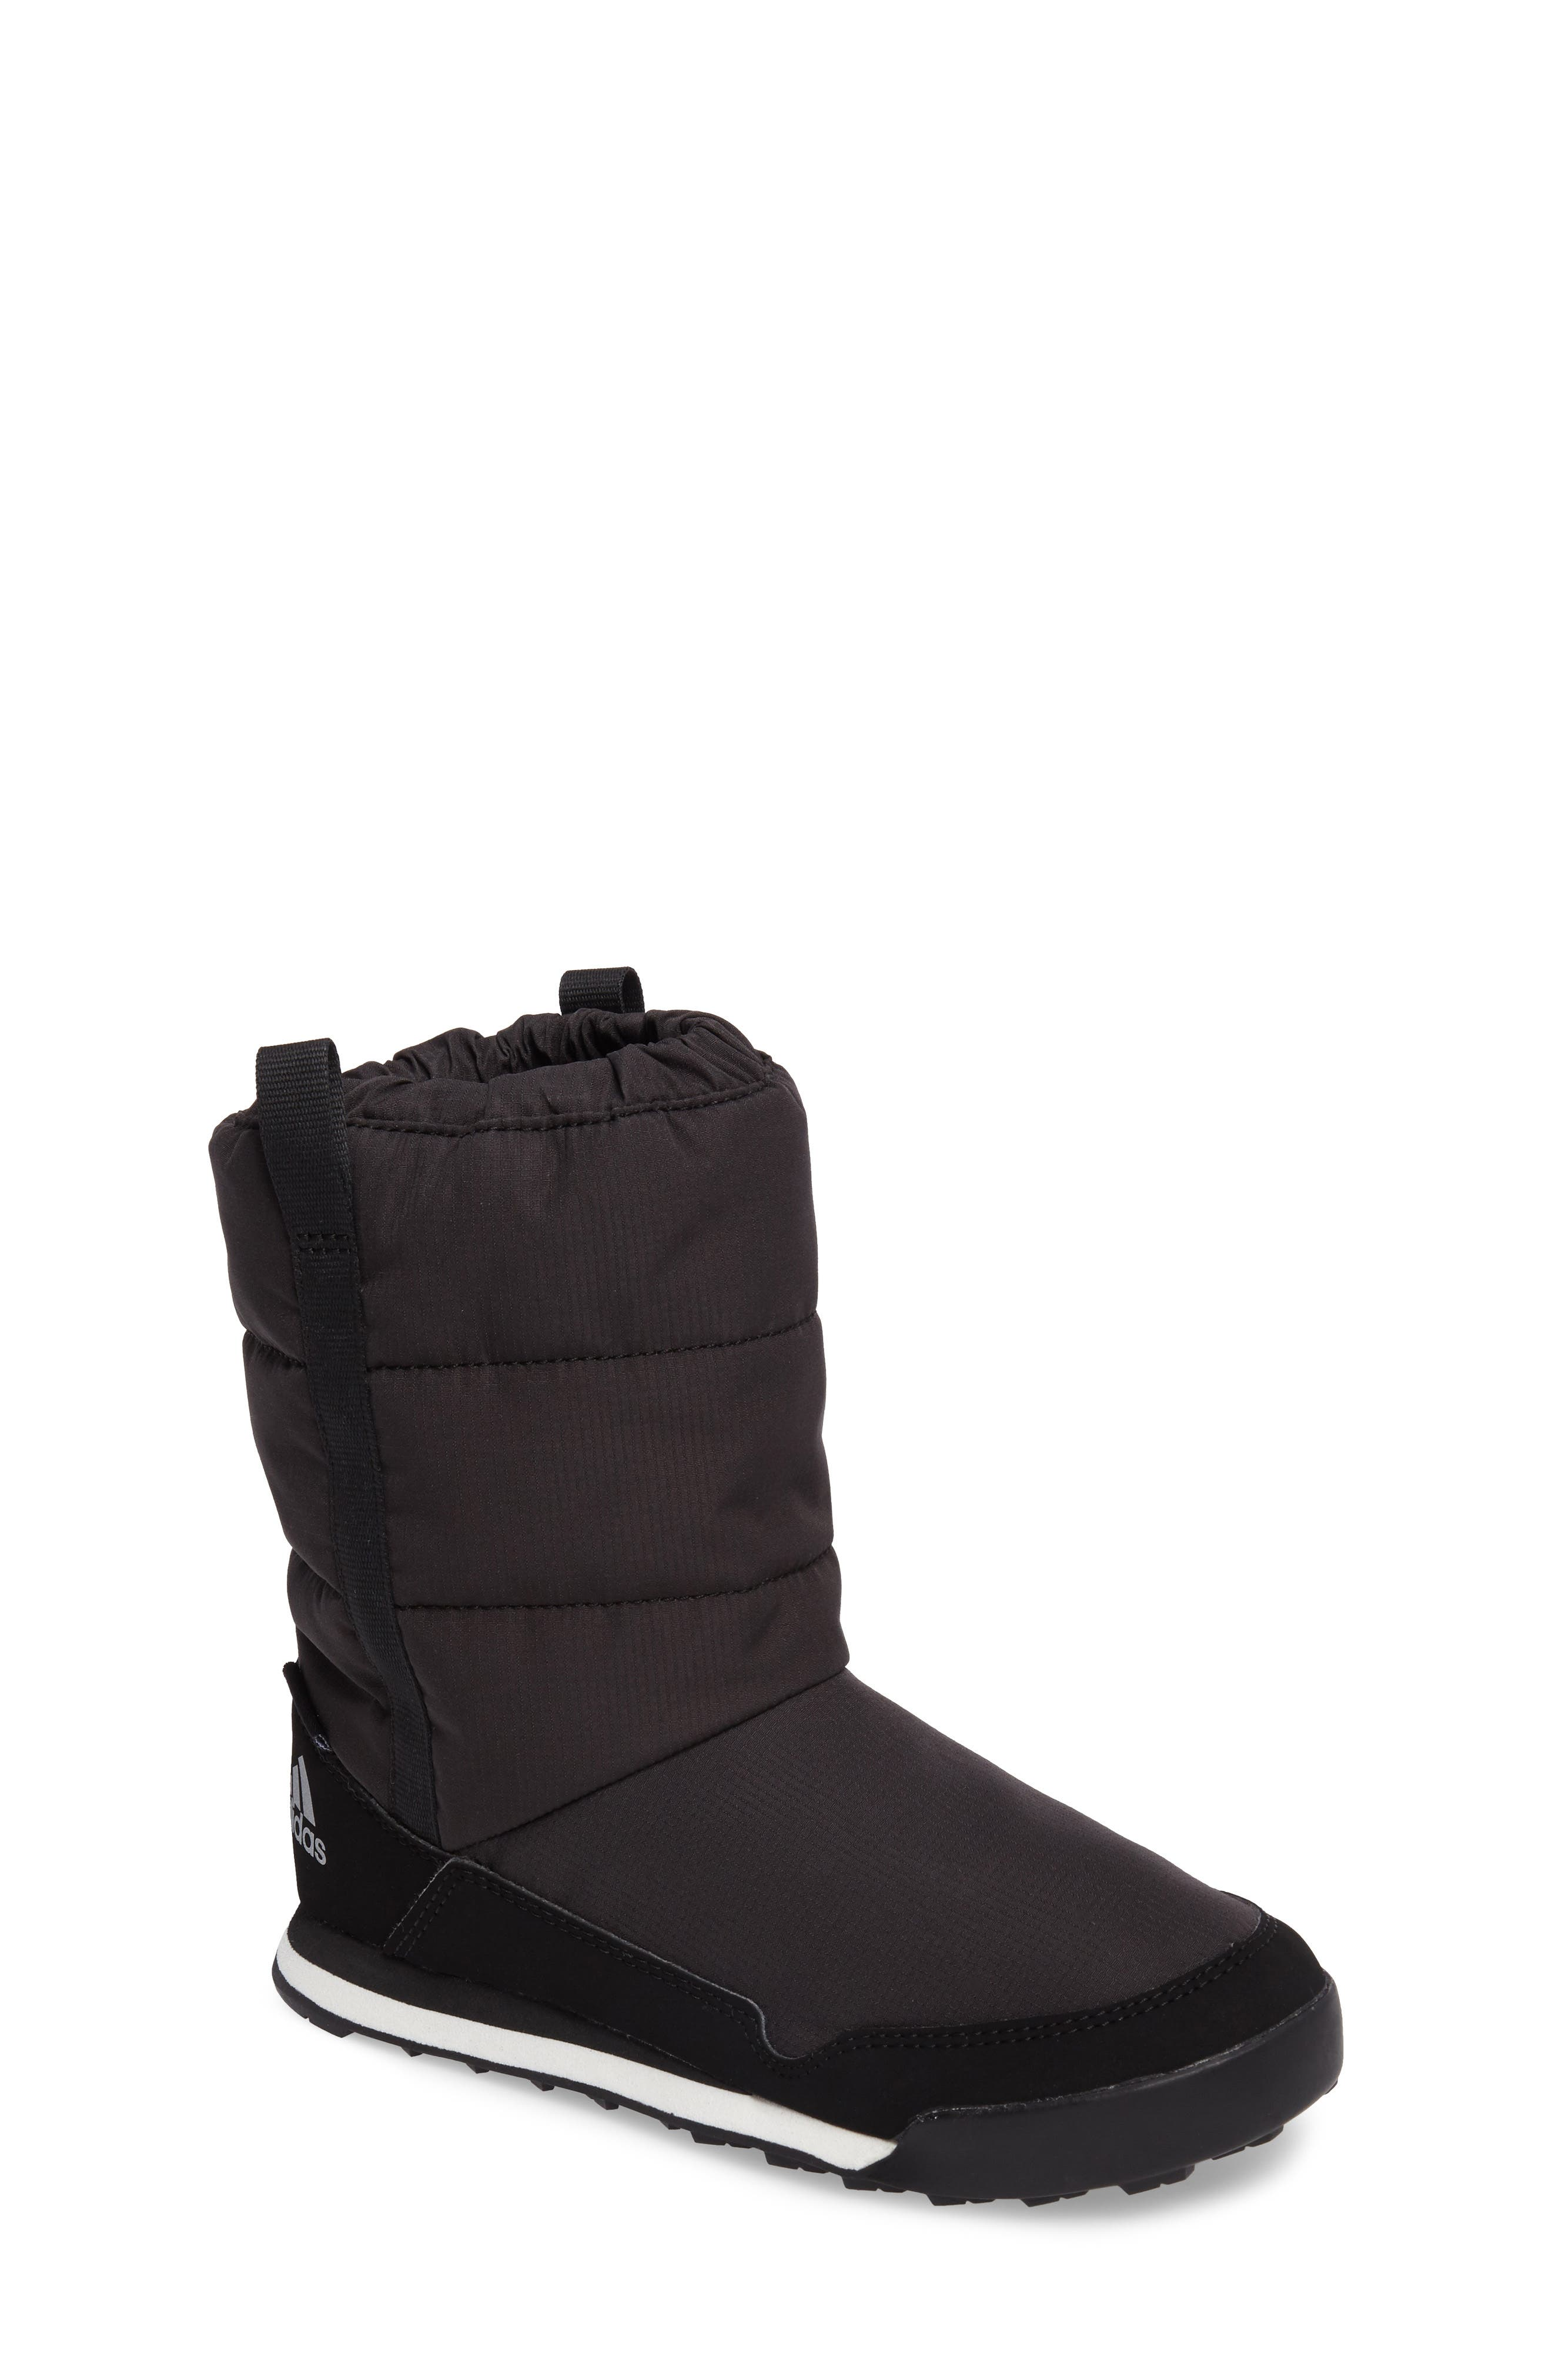 CW Snowpitch Insulated Waterproof Boot,                             Main thumbnail 1, color,                             001